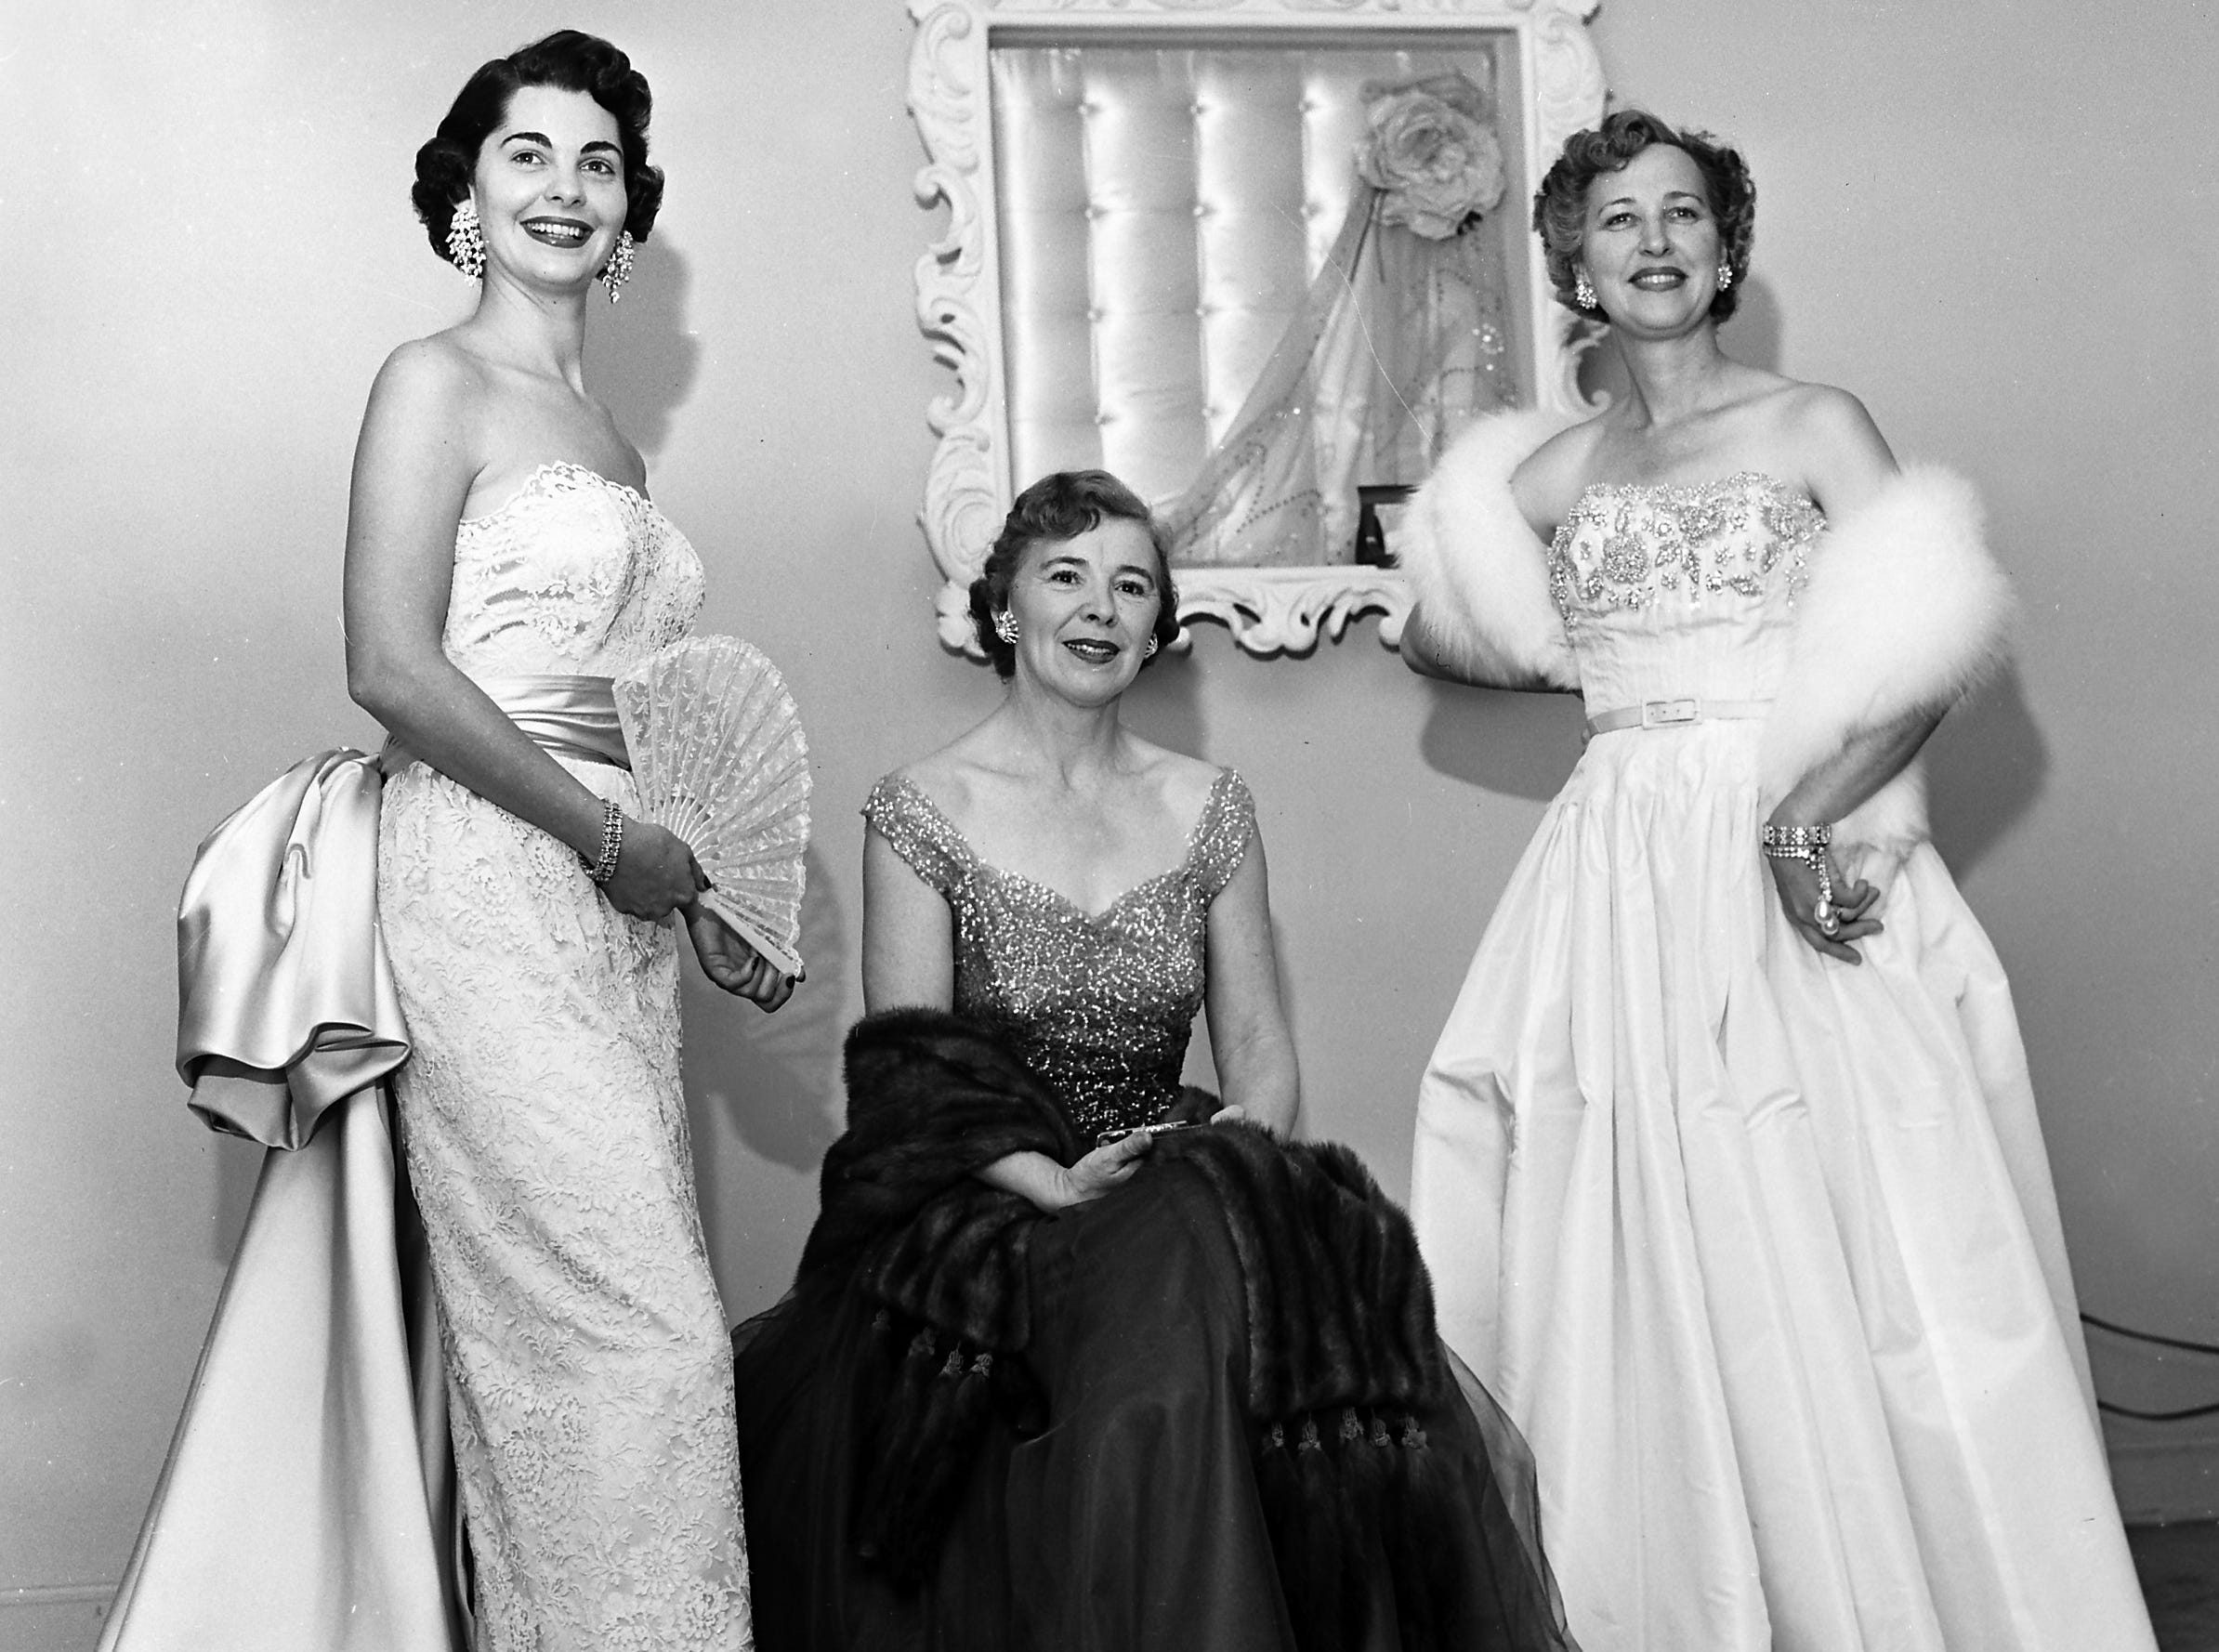 Showing a few of the new winter fashions that will be modeled at the Duration Club's annual Stars and Stripes Ball in November 1952 are (Left to Right) Mrs. Dabney Crump Jr., Mrs. Charles A. Harrelson and Mrs. John Davis Hughes.  Mrs. Crump's lace sheath gown features a wide satin train draped from the waistline, and Mrs. Harrelson's gown, styled with a fitted bodice embroidered in rhinestones and a bouffant tulle skirt shading from violet to royal purple, is accented by a lovely mink stole.  Mrs. Hughes wears a white tissue taffeta strapless gown with the bodice etched in pearls and rhinestones.  The fashion show will be staged by LaClede's.